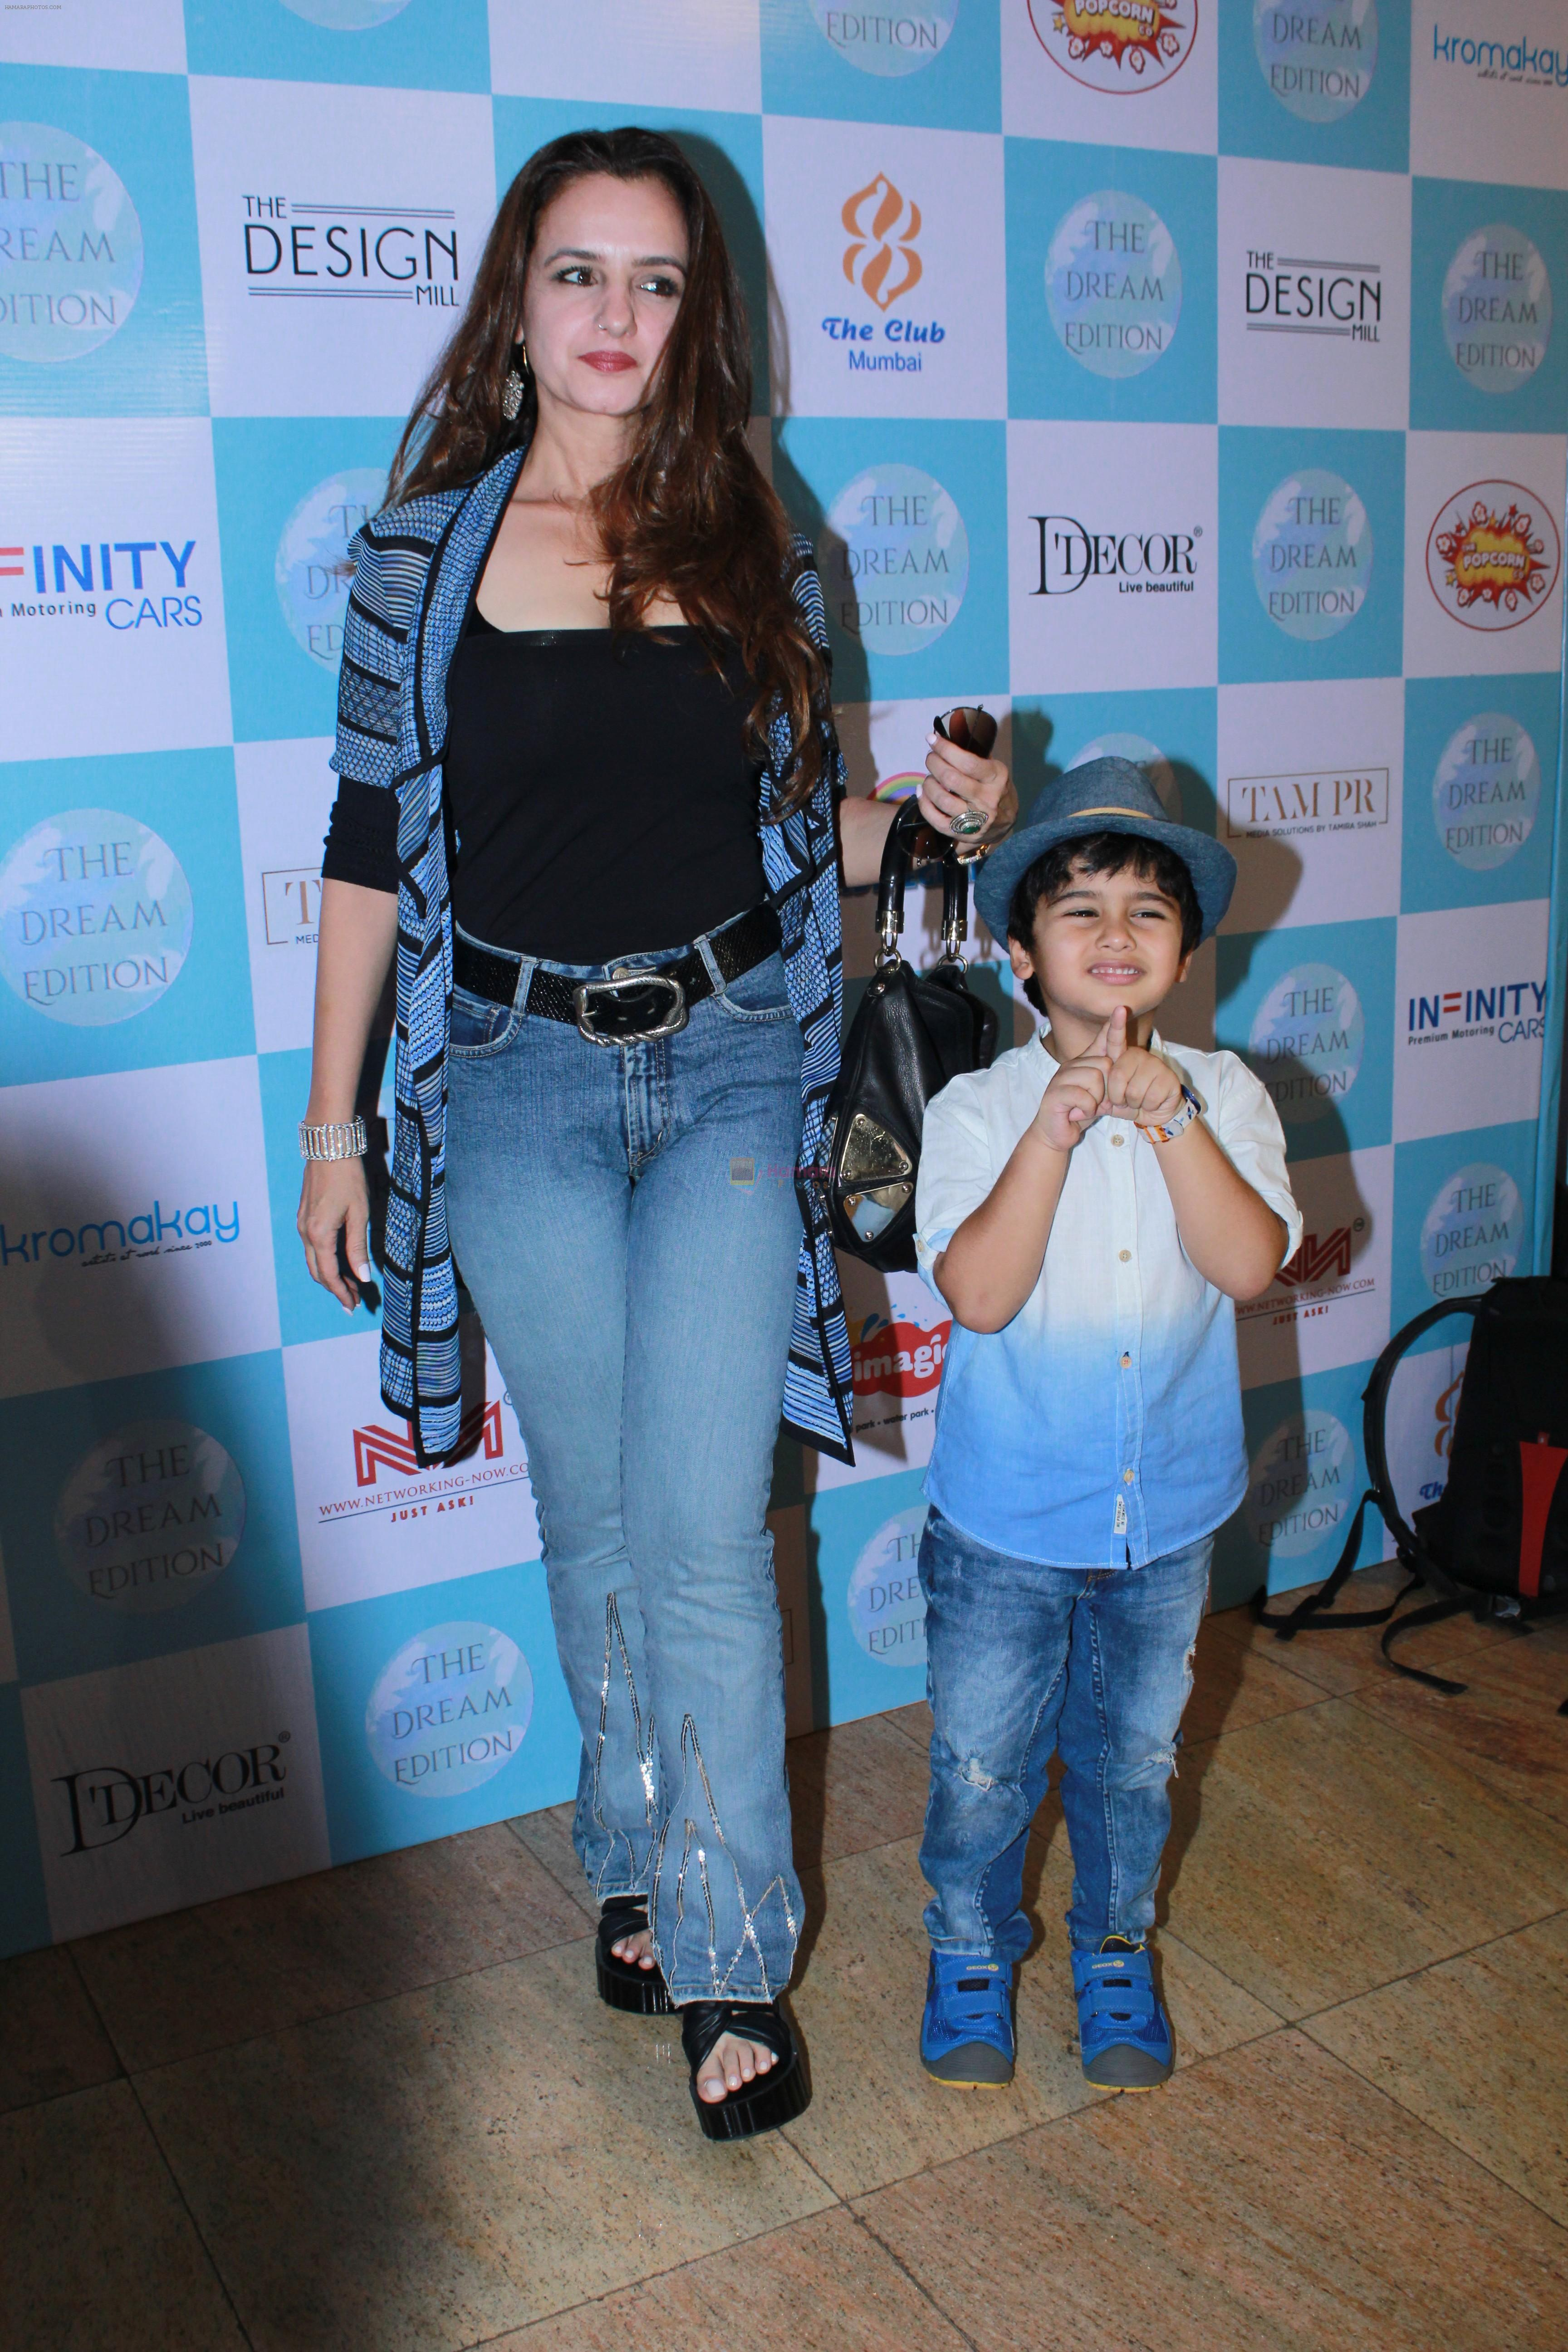 Laila Khan Rajpal At The Dream Edition Lifestyle Fare For Mommies & Kids on 28th AUg 2019